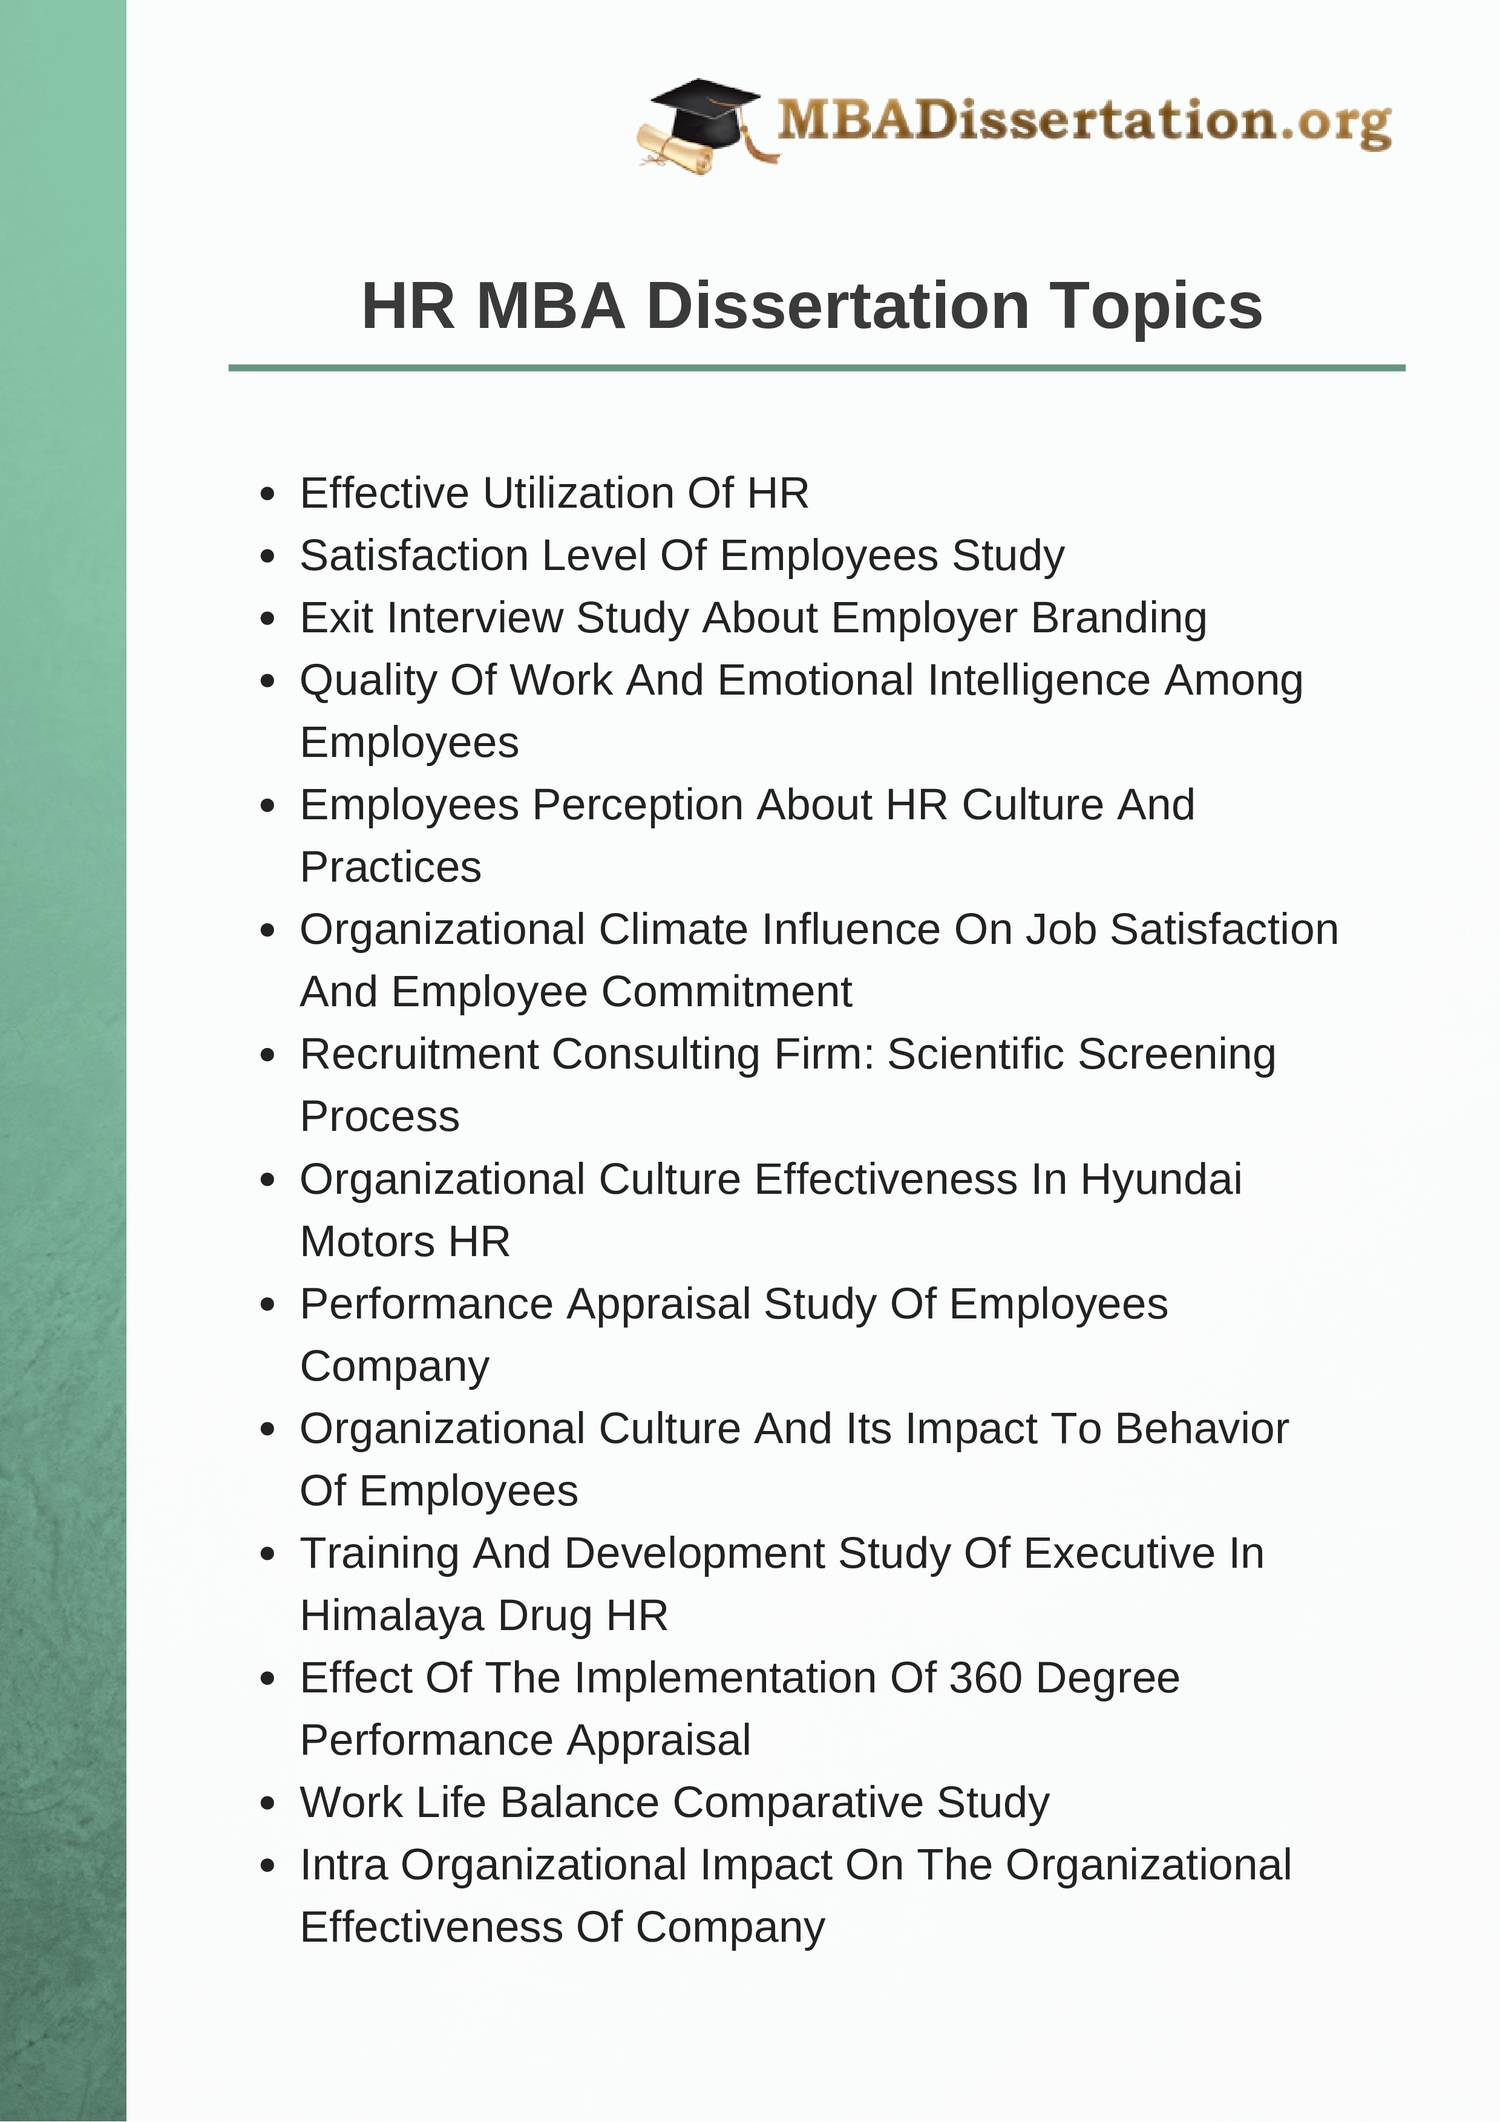 Check Out the Most Relevant Dissertation Topics